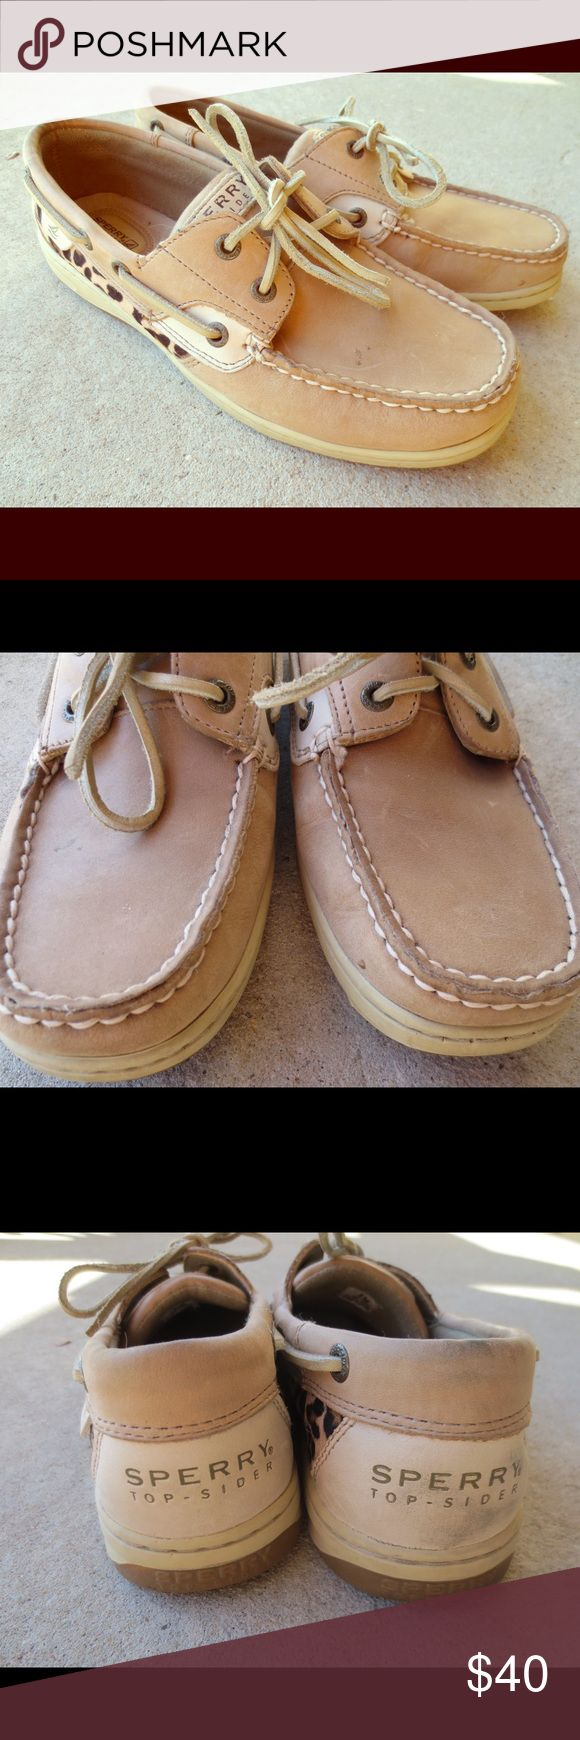 Sperry leopard (or cheetah) shoes Sperry leopard shoes in great condition. Some scuffs and marks that you may be able to clean up. Women's size 8. Sperry Top-Sider Shoes Flats & Loafers